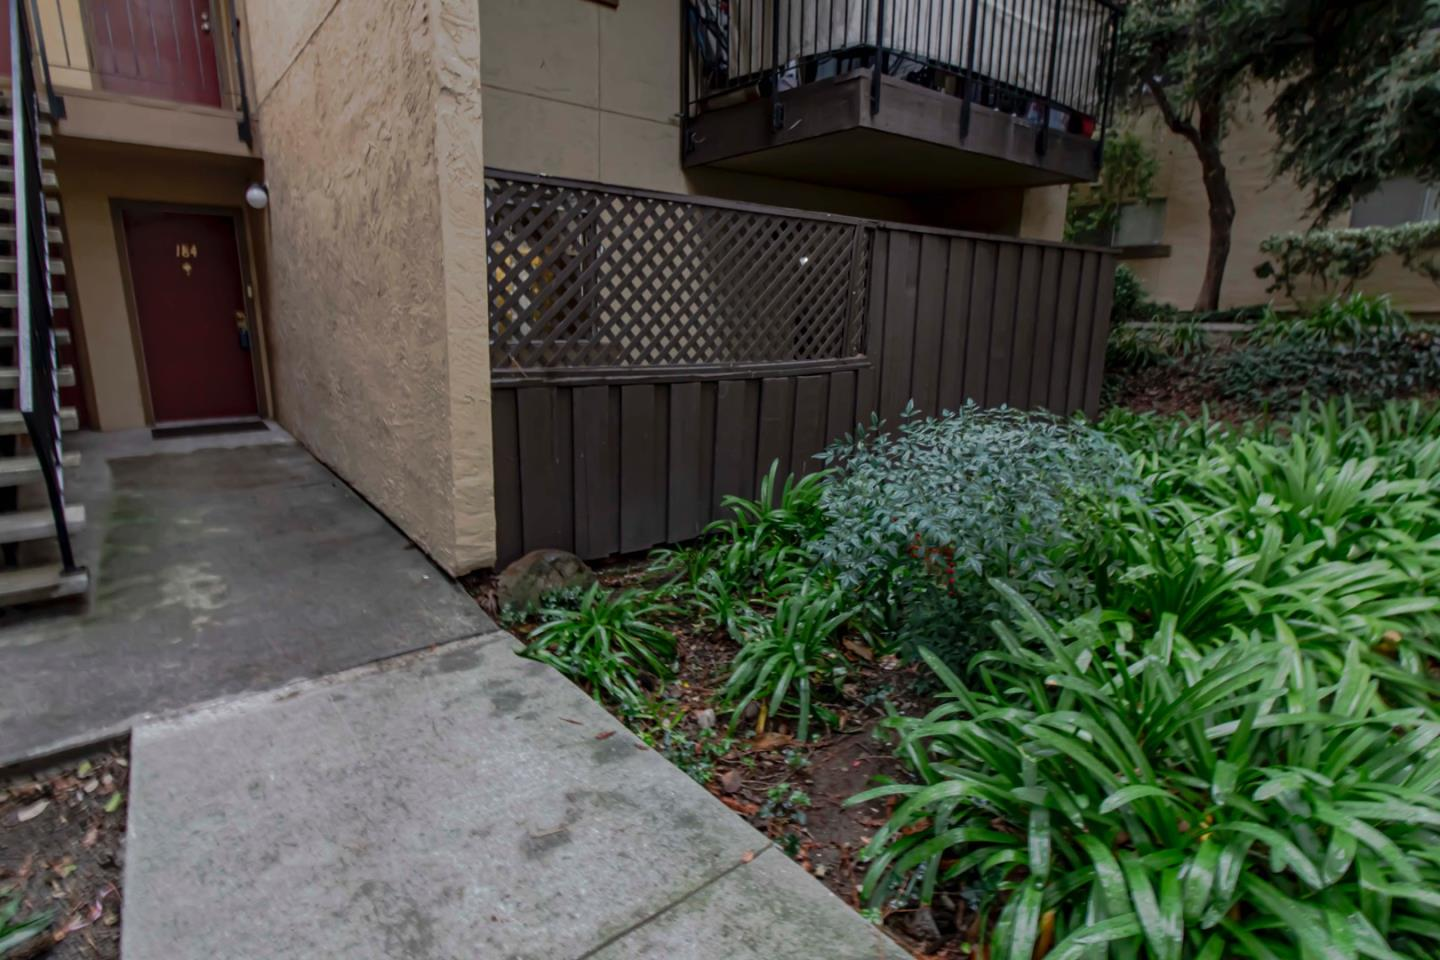 Well maintained 2 bedroom, 2 bath condo in Mission Grove Condo Complex! Kitchen features granite countertops and a stainless steel dishwasher. The bathrooms feature updated tile surrounds. HOA includes water and garbage, as well as a dedicated carport space. onsite laundry facilities. The gated complex offers many amenities, including well manicured grounds with mature trees in a great park like setting. Other features are onsite laundry facilities, a pool and spa, gym, and club house. Conveniently located near McKee Avenue and North Capitol Avenue, it is within walking distance to stores, restaurants, theater, Light Rail, and more!